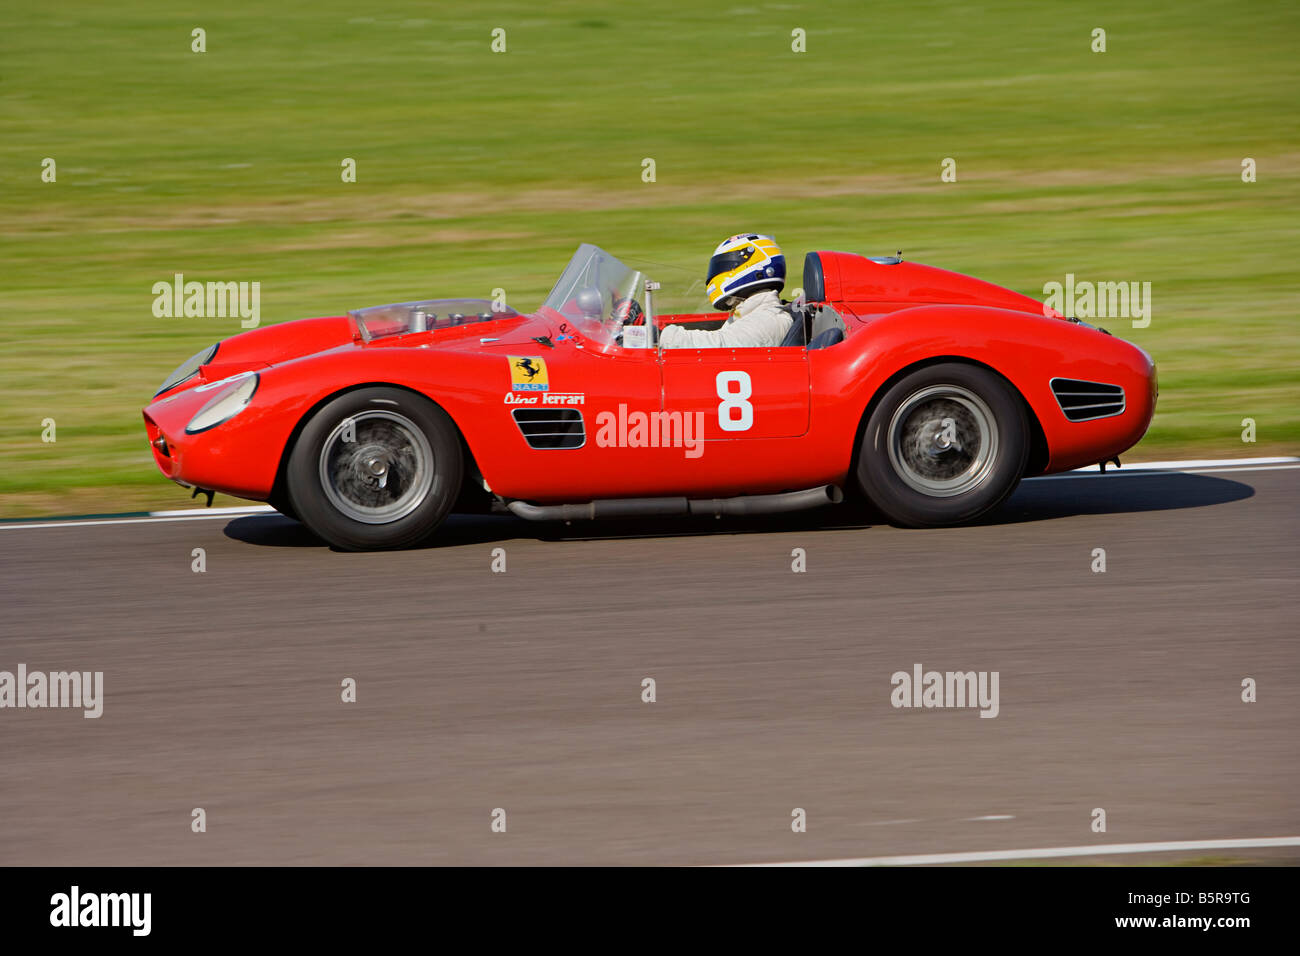 Ferrari Dino, racing at Goodwood Revival, West Sussex - Stock Image